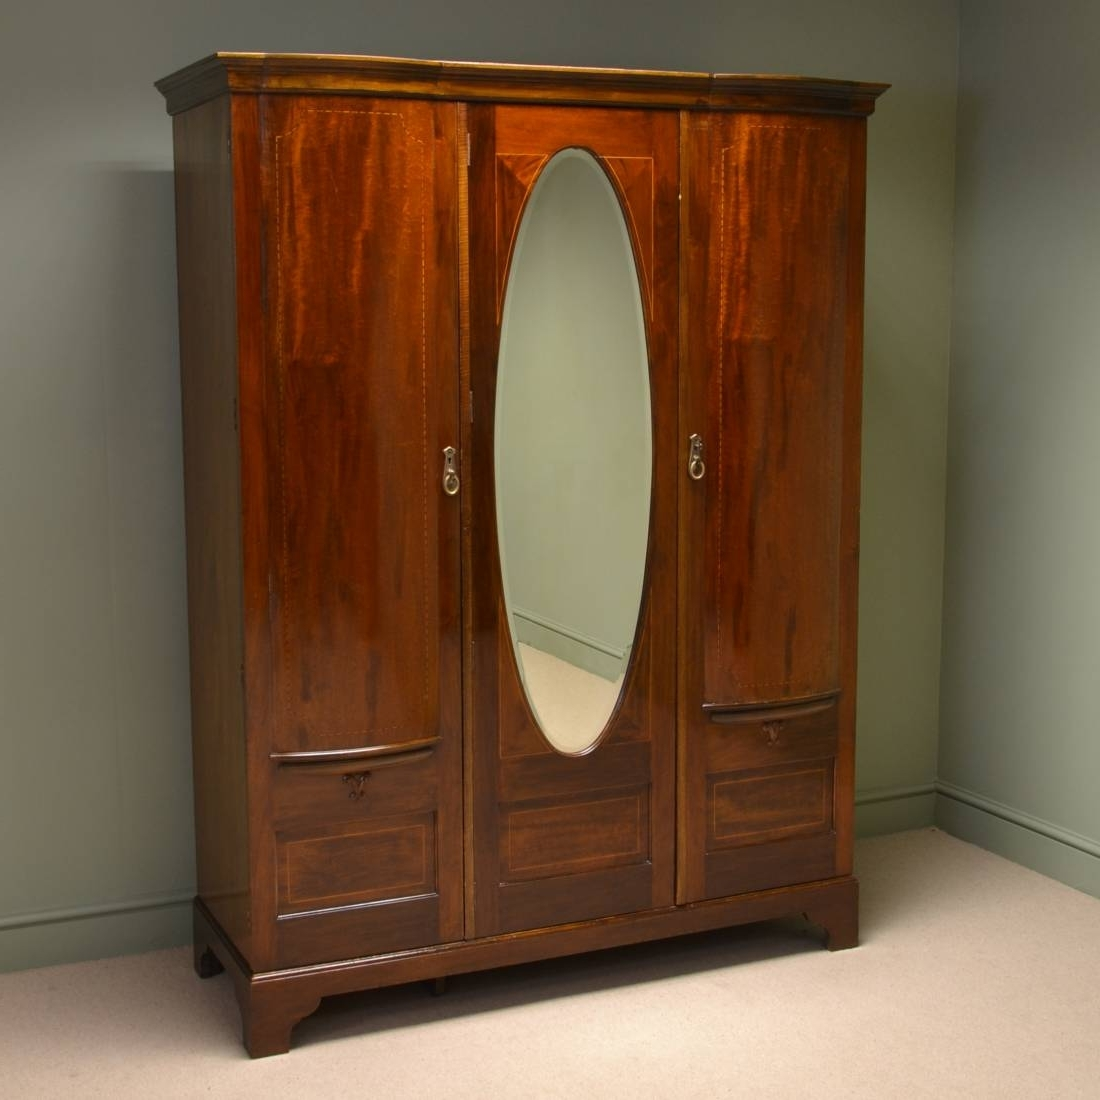 Newest Maple & Co Antique Furniture – Antiques World With Regard To Antique Single Wardrobes (View 10 of 15)